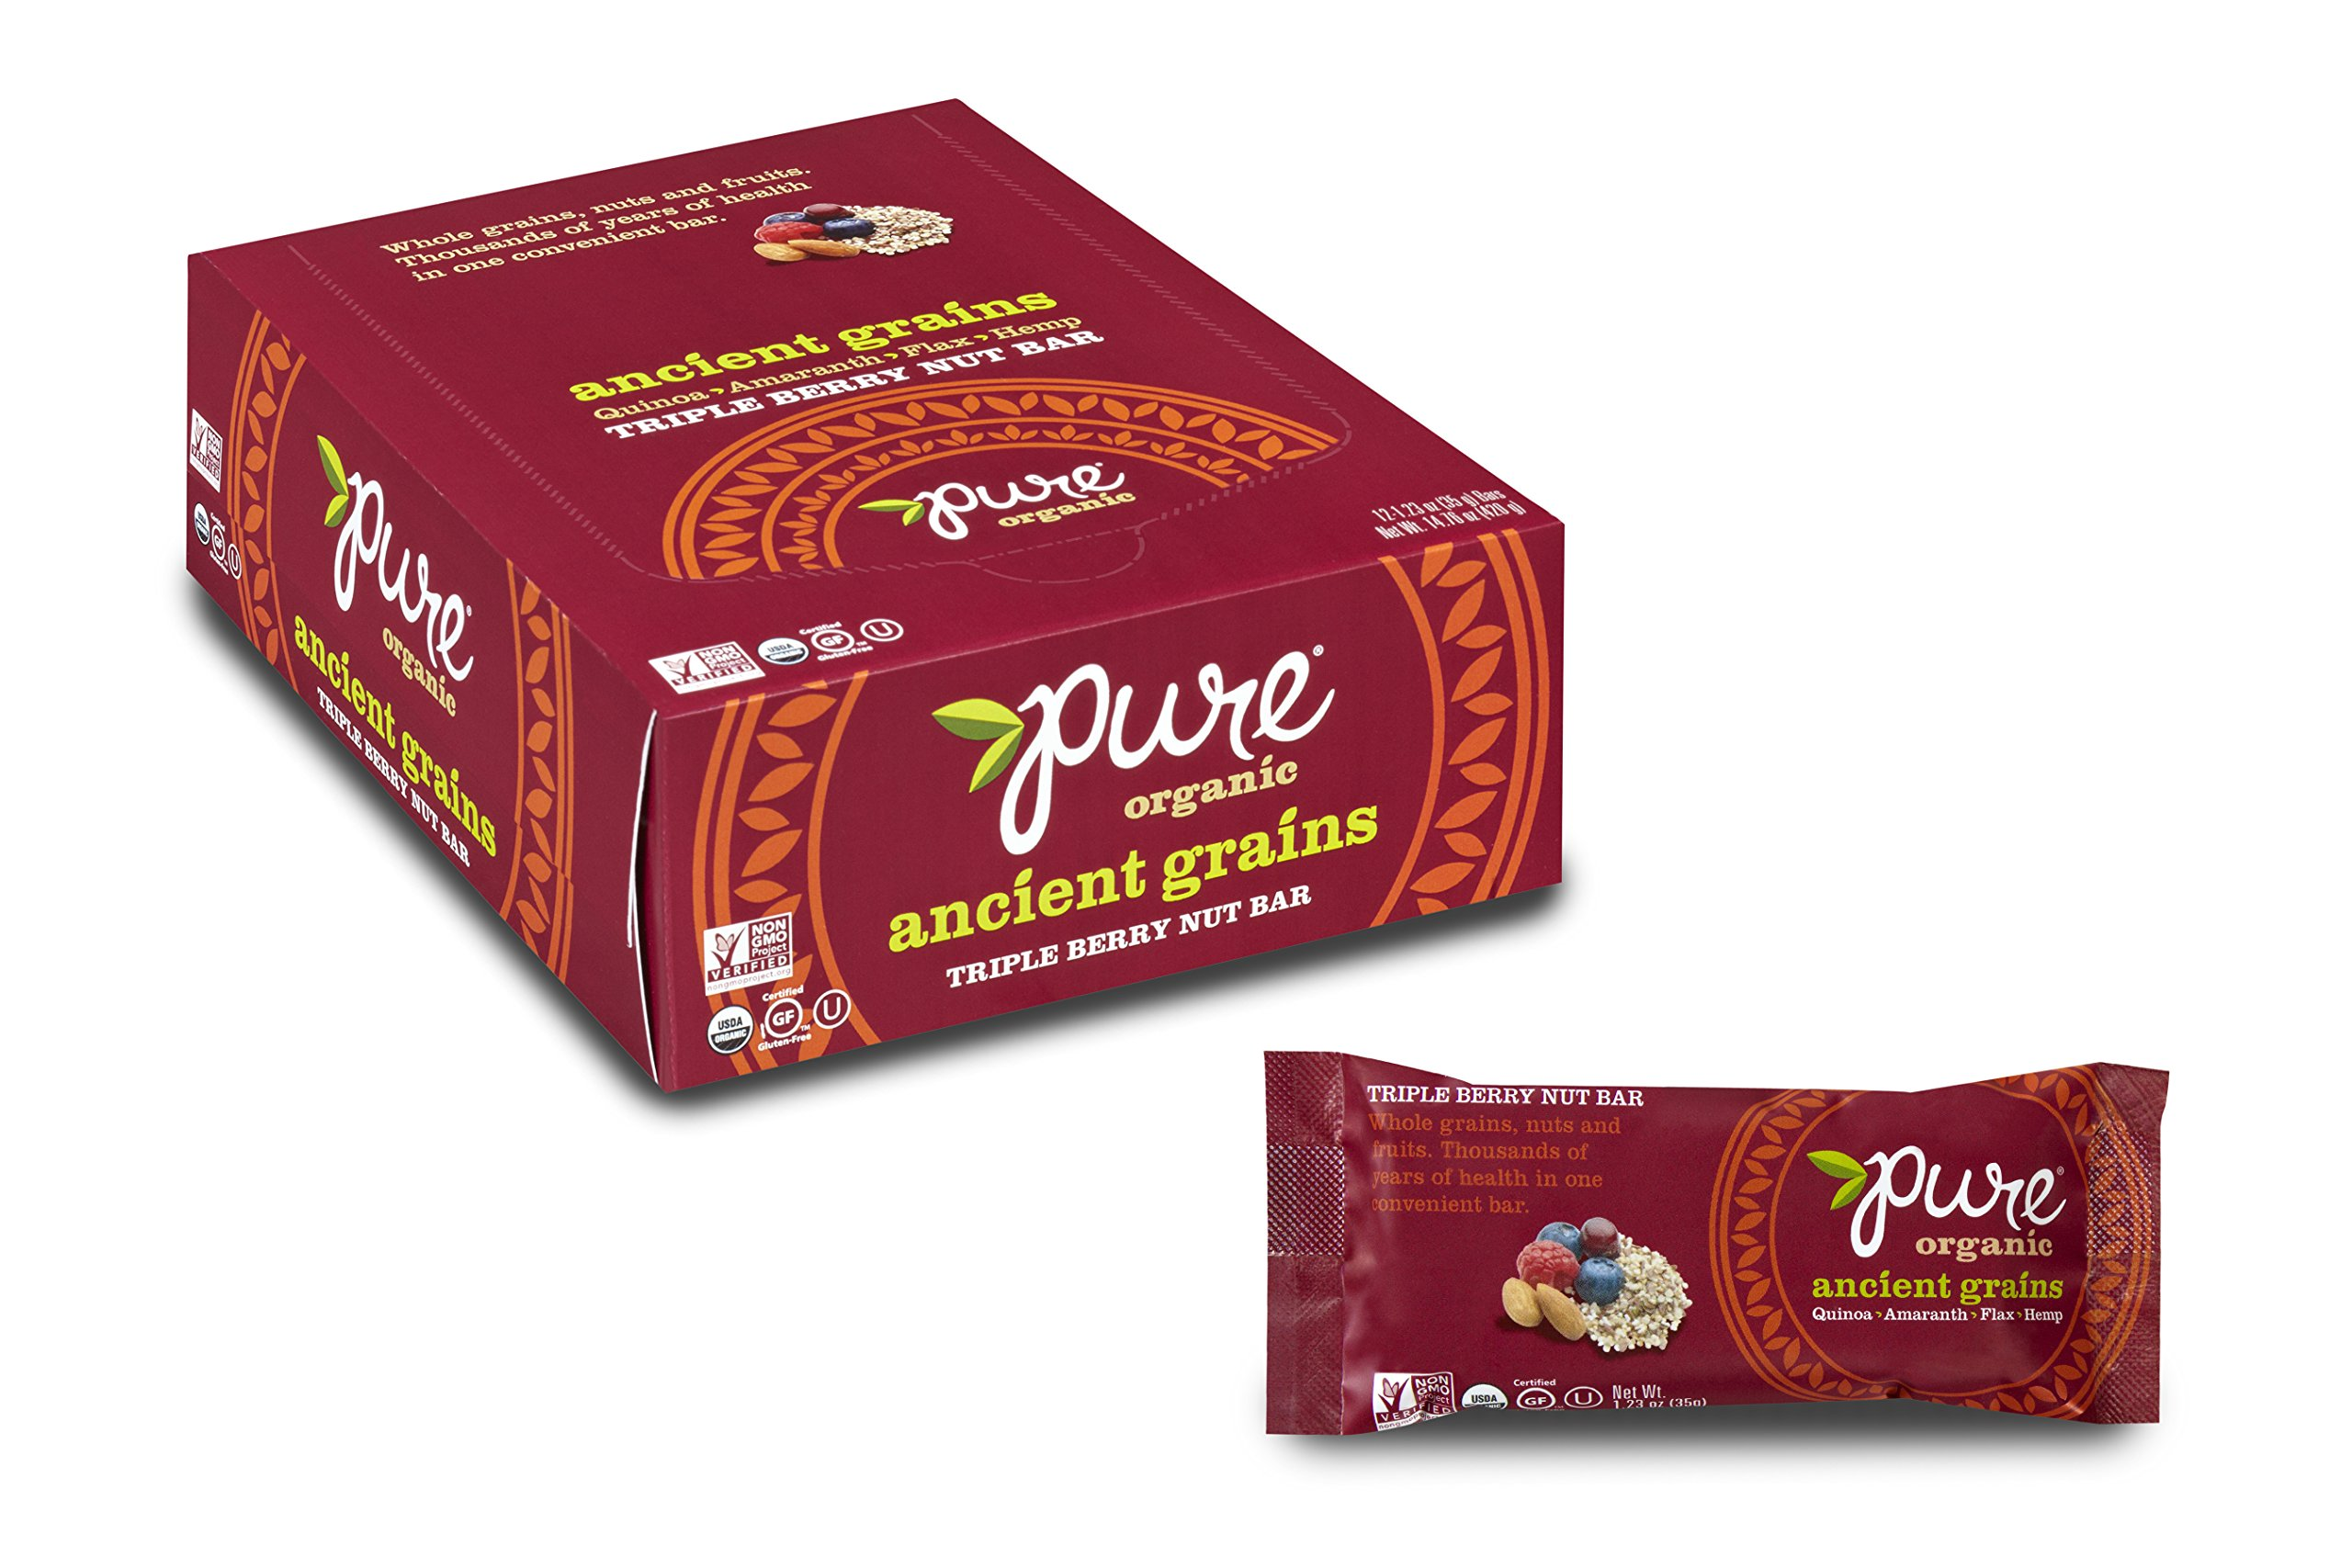 Pure Organic Triple Berry, Ancient Grain and Nut Crispy Bar, Gluten-Free, Certified Organic, Non-GMO, Vegan, Kosher, Plant Based Whole Food Nutrition Bar, 1.23 ounce (Pack of 12)